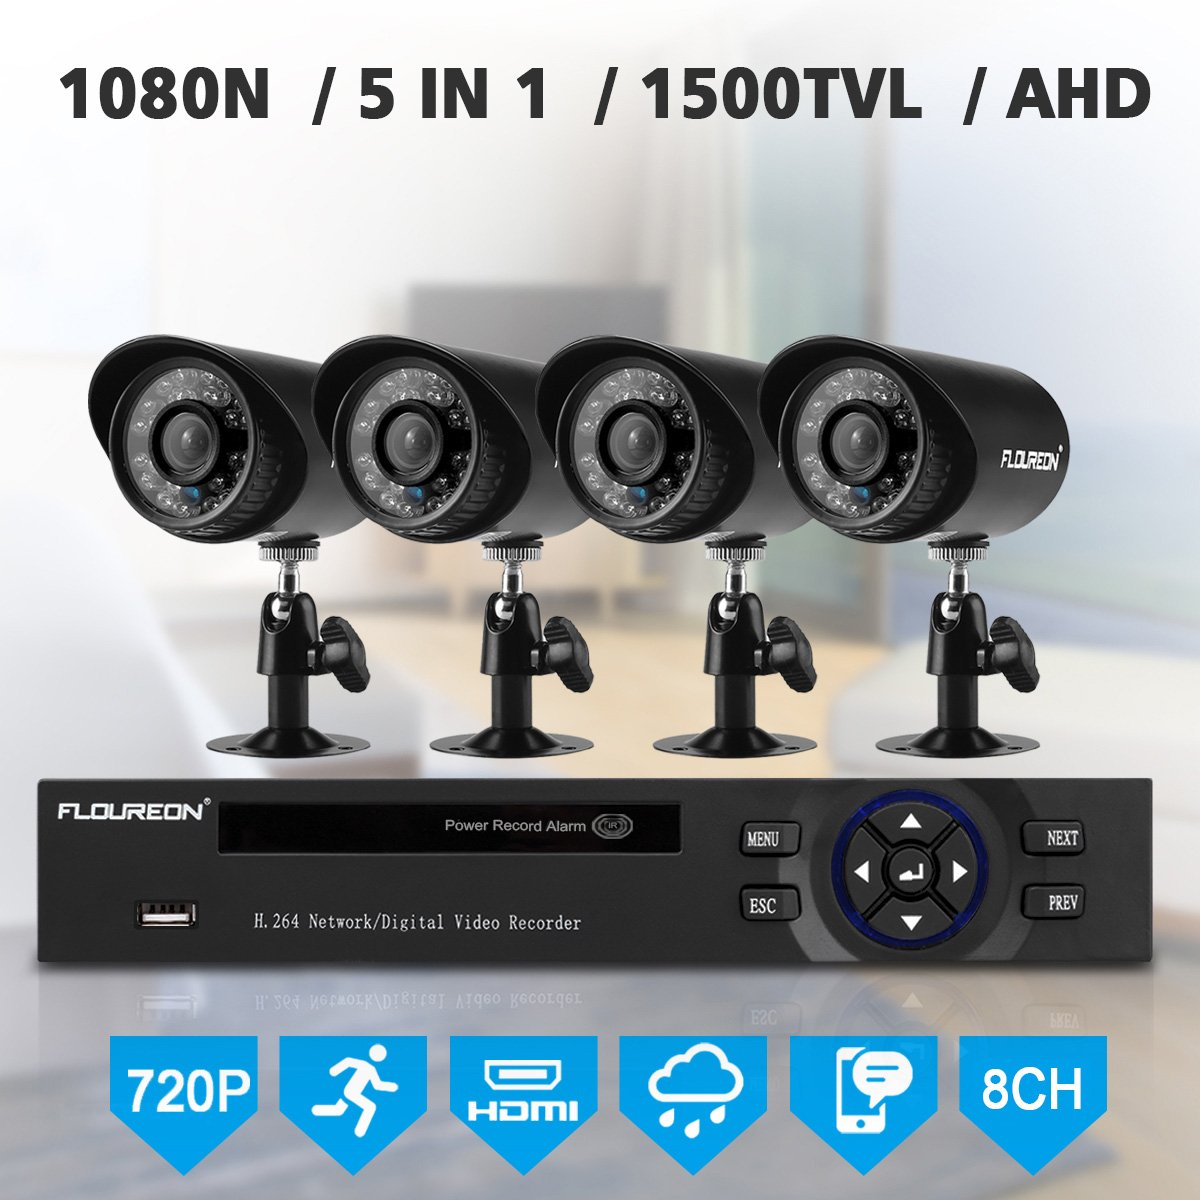 FLOUREON House Security Camera System 1080N DVR + 4 Pack 1.0MP CMOS Lens CCTV Security Camera 1500TVL Night Vision Remote Access Motion Detection (8CH+ 4X 1500TVL Camera) by floureon